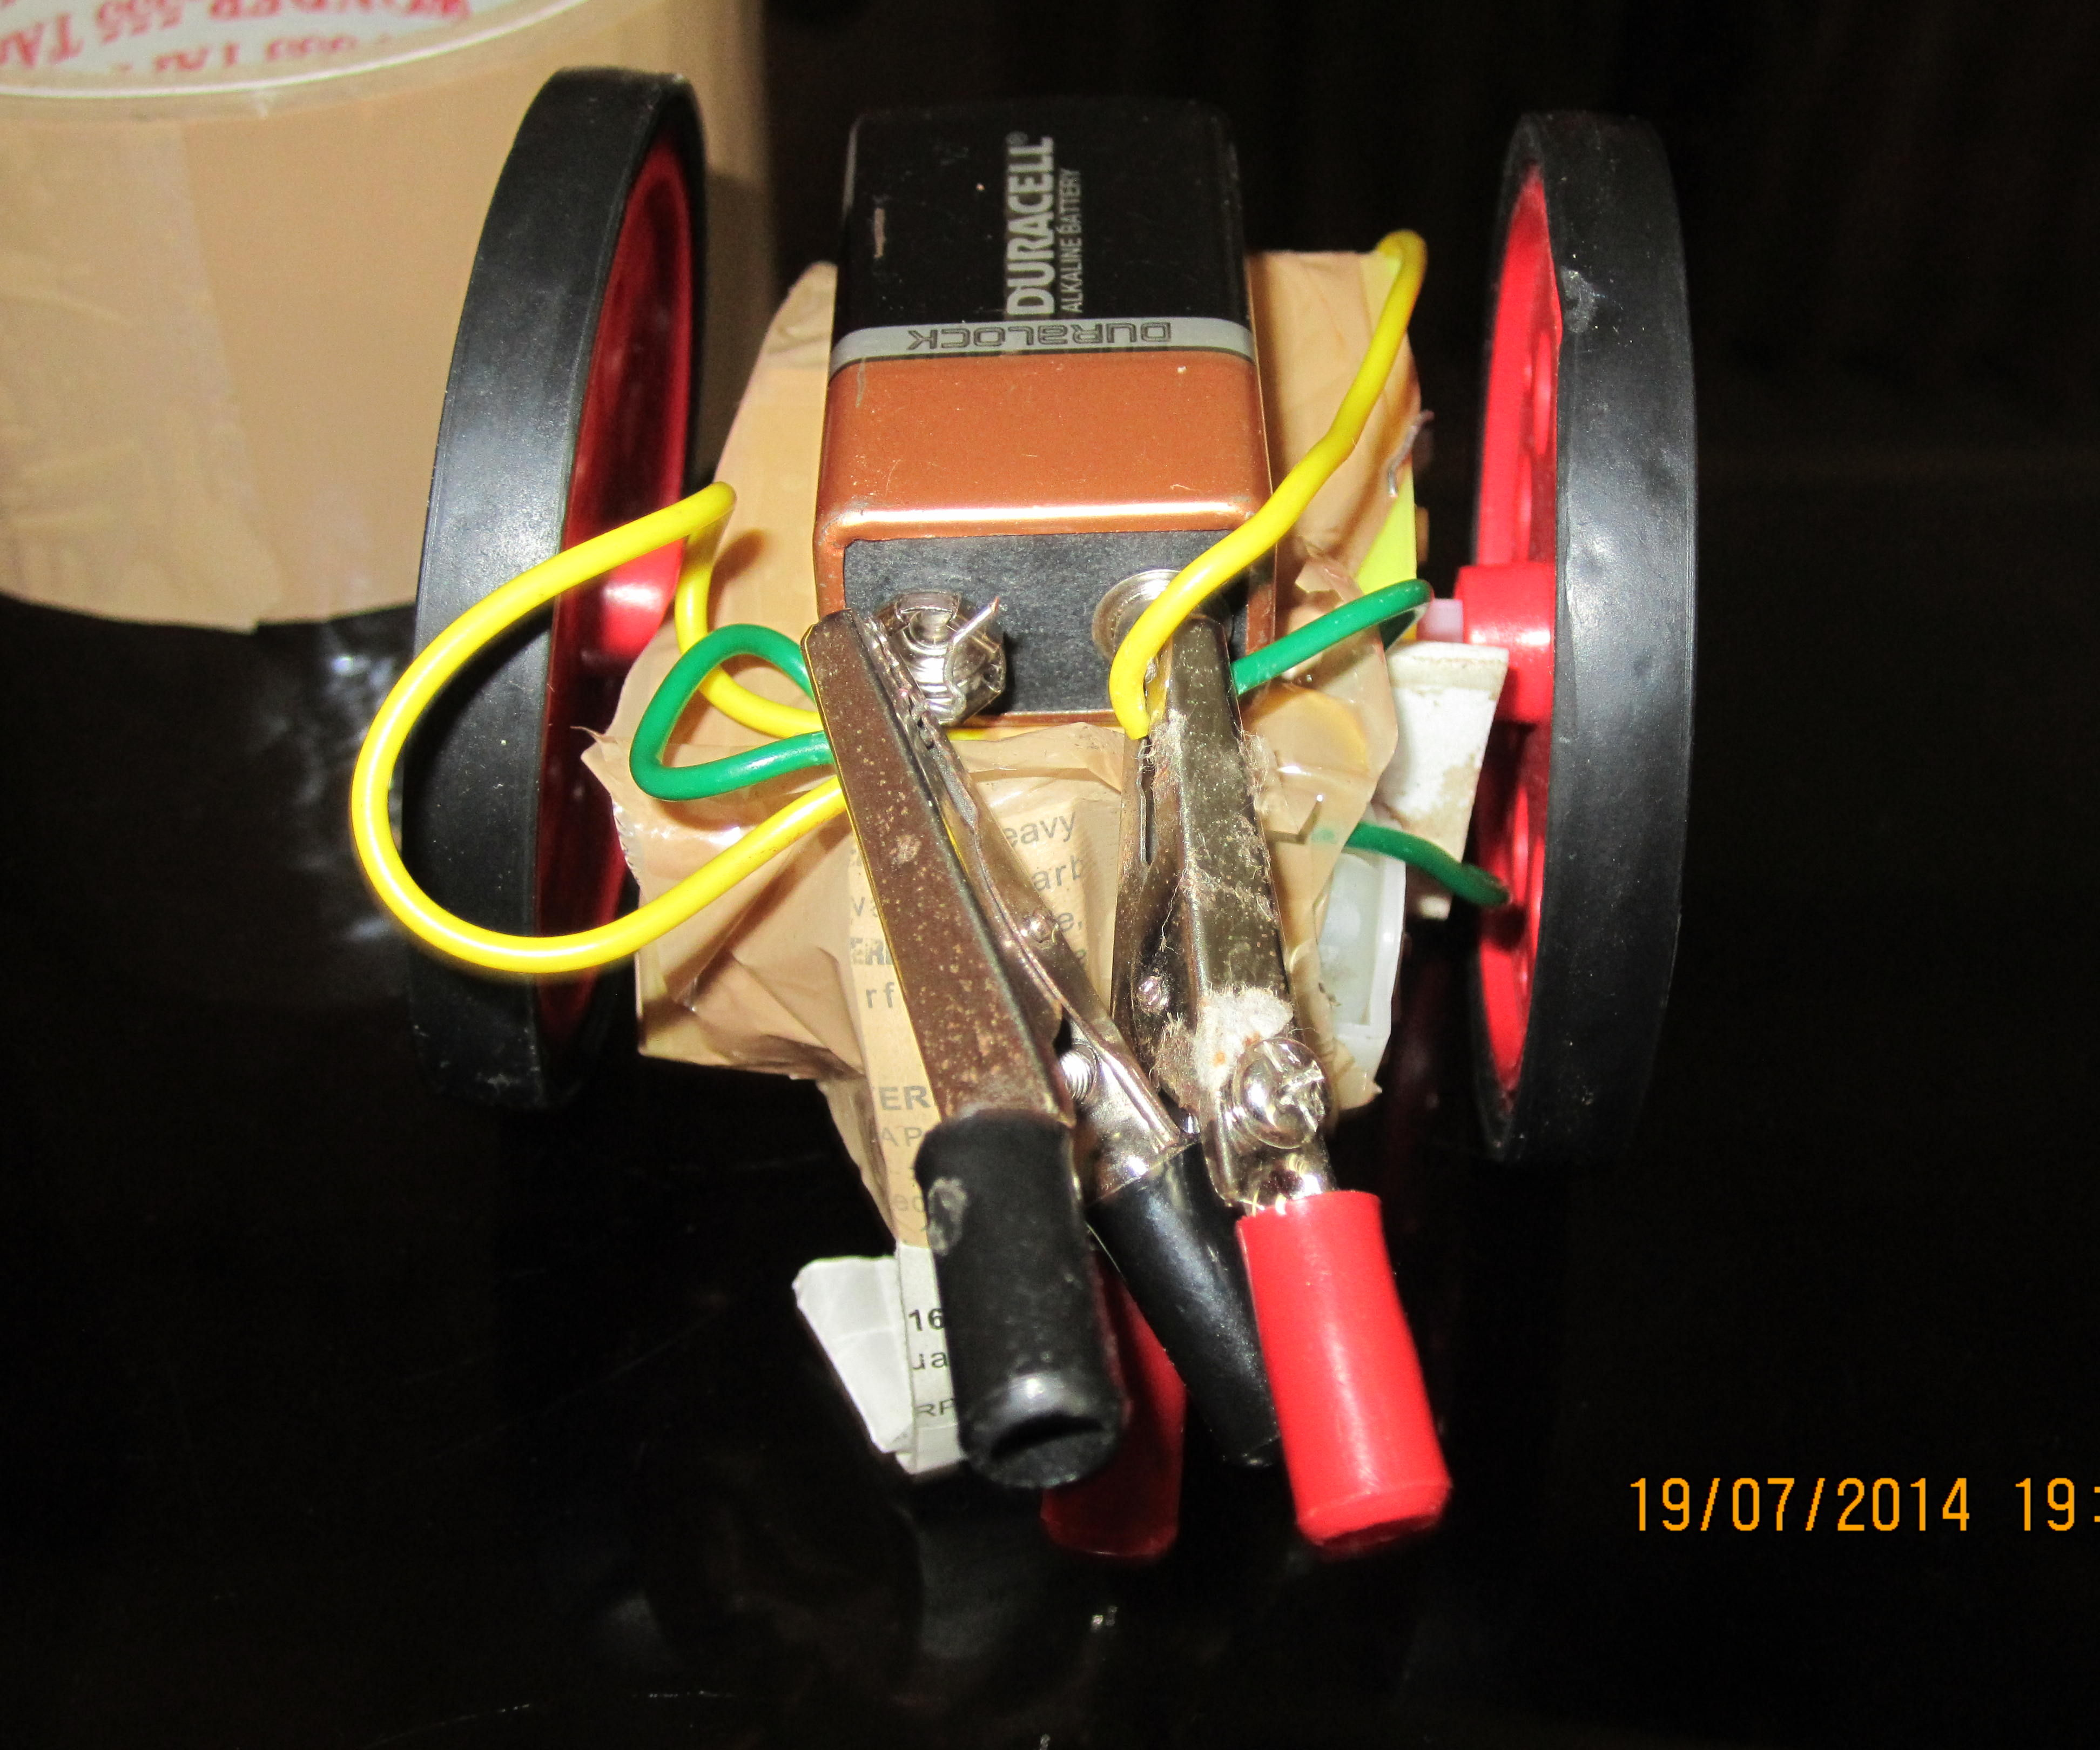 simple car (no chassis)